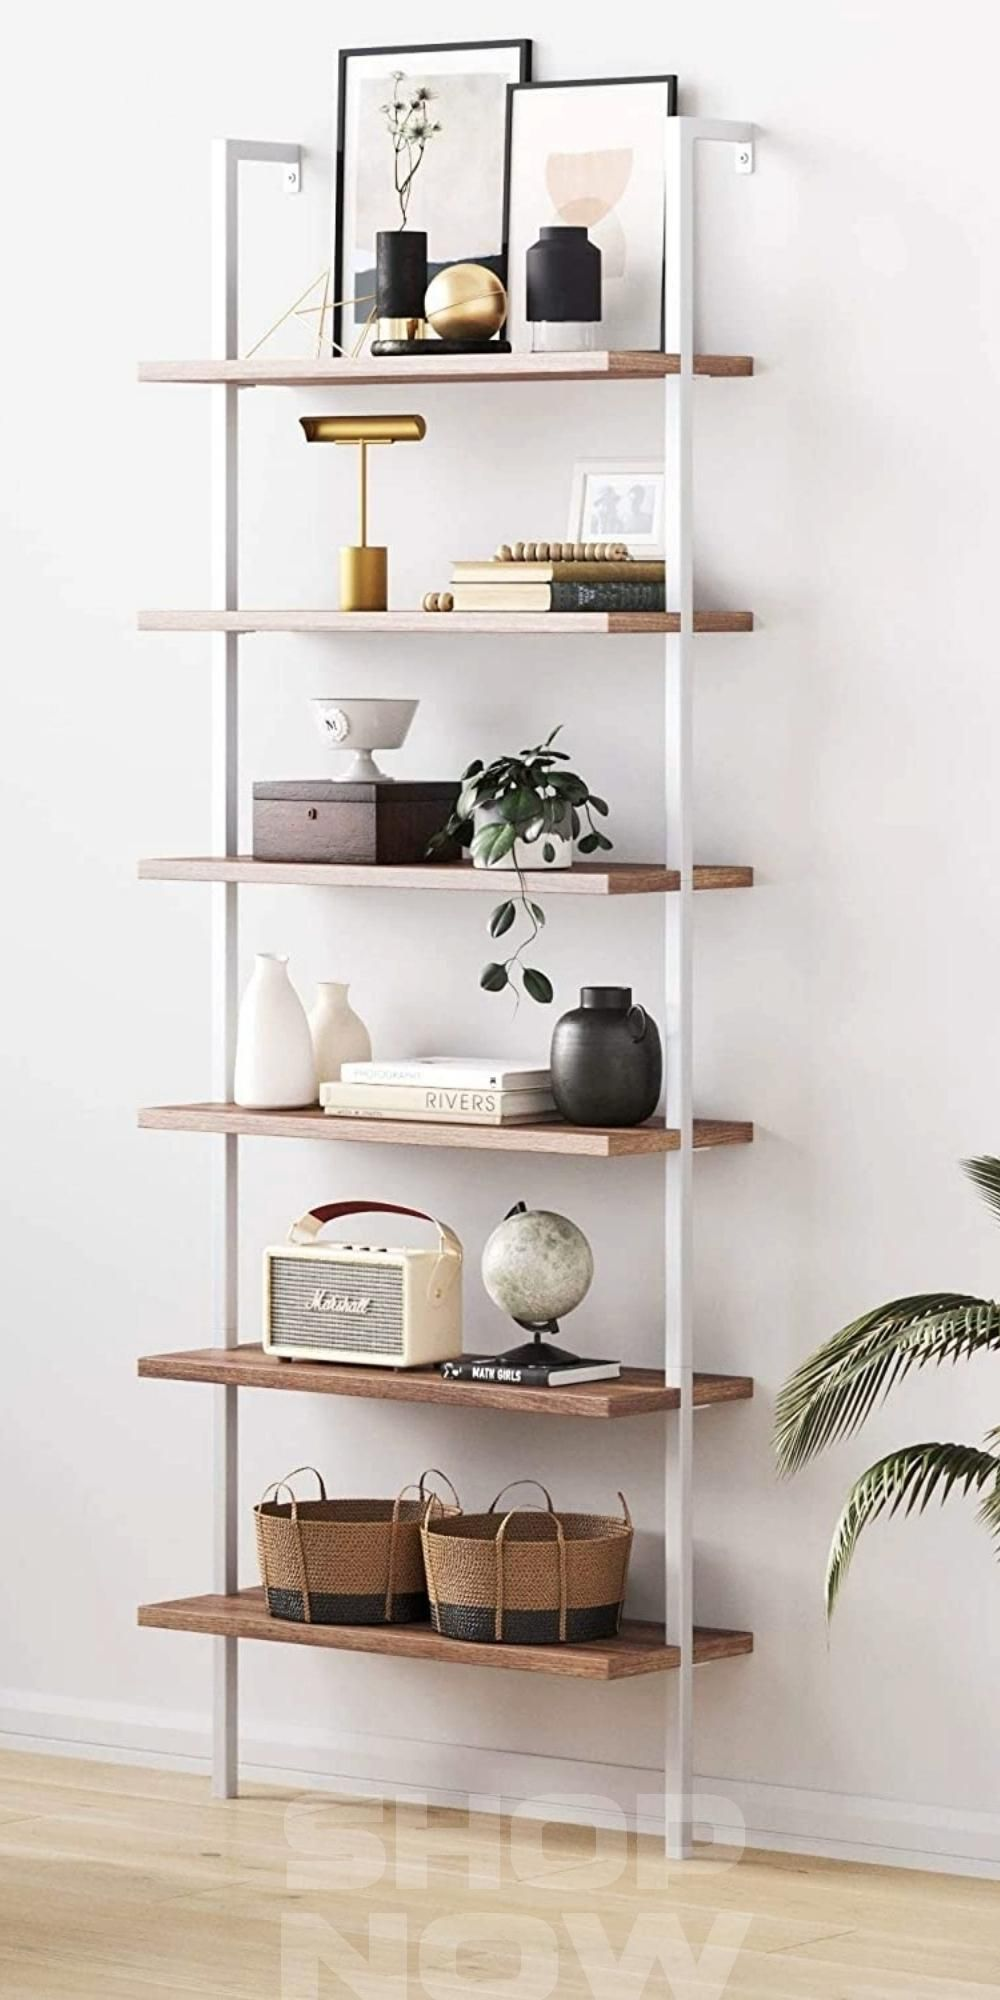 Photo of Shelves 6-Shelf Tall Bookcase, Wall Mount Bookshelf with Natural Wood Finish and Metal Frame